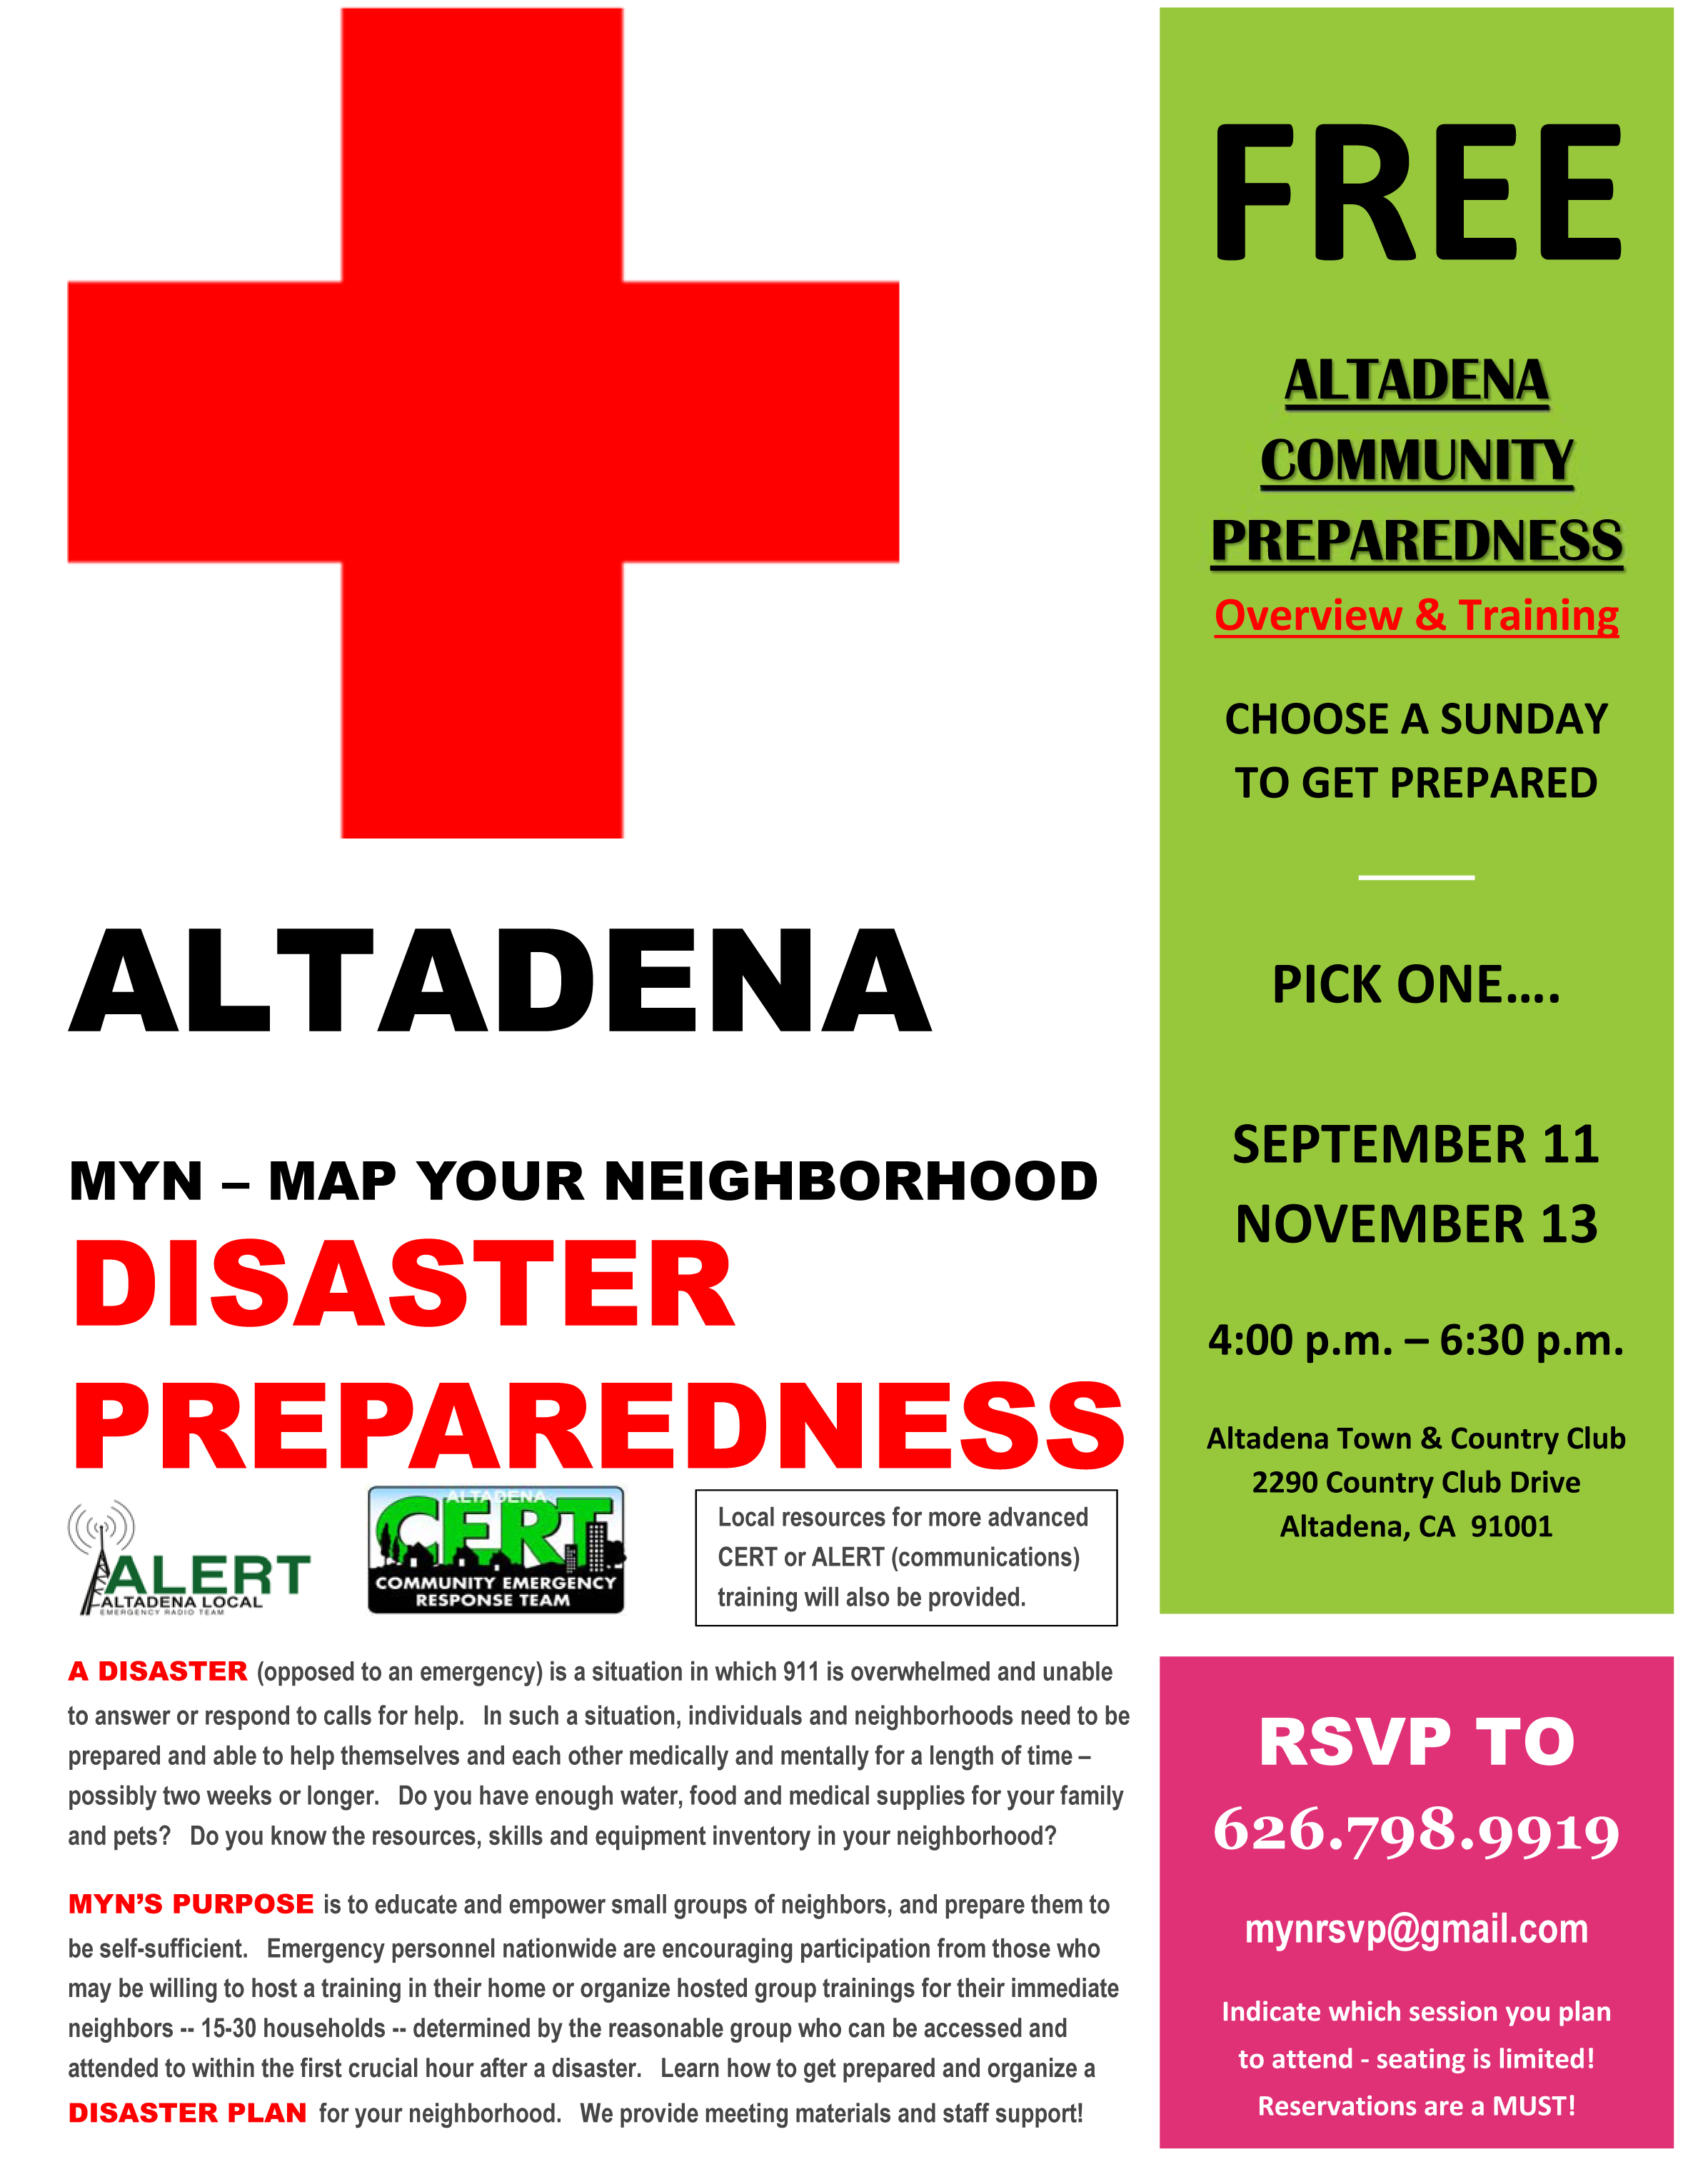 Map Your Neighborhood Disaster Preparedness Training to be Held at Altadena Country Club